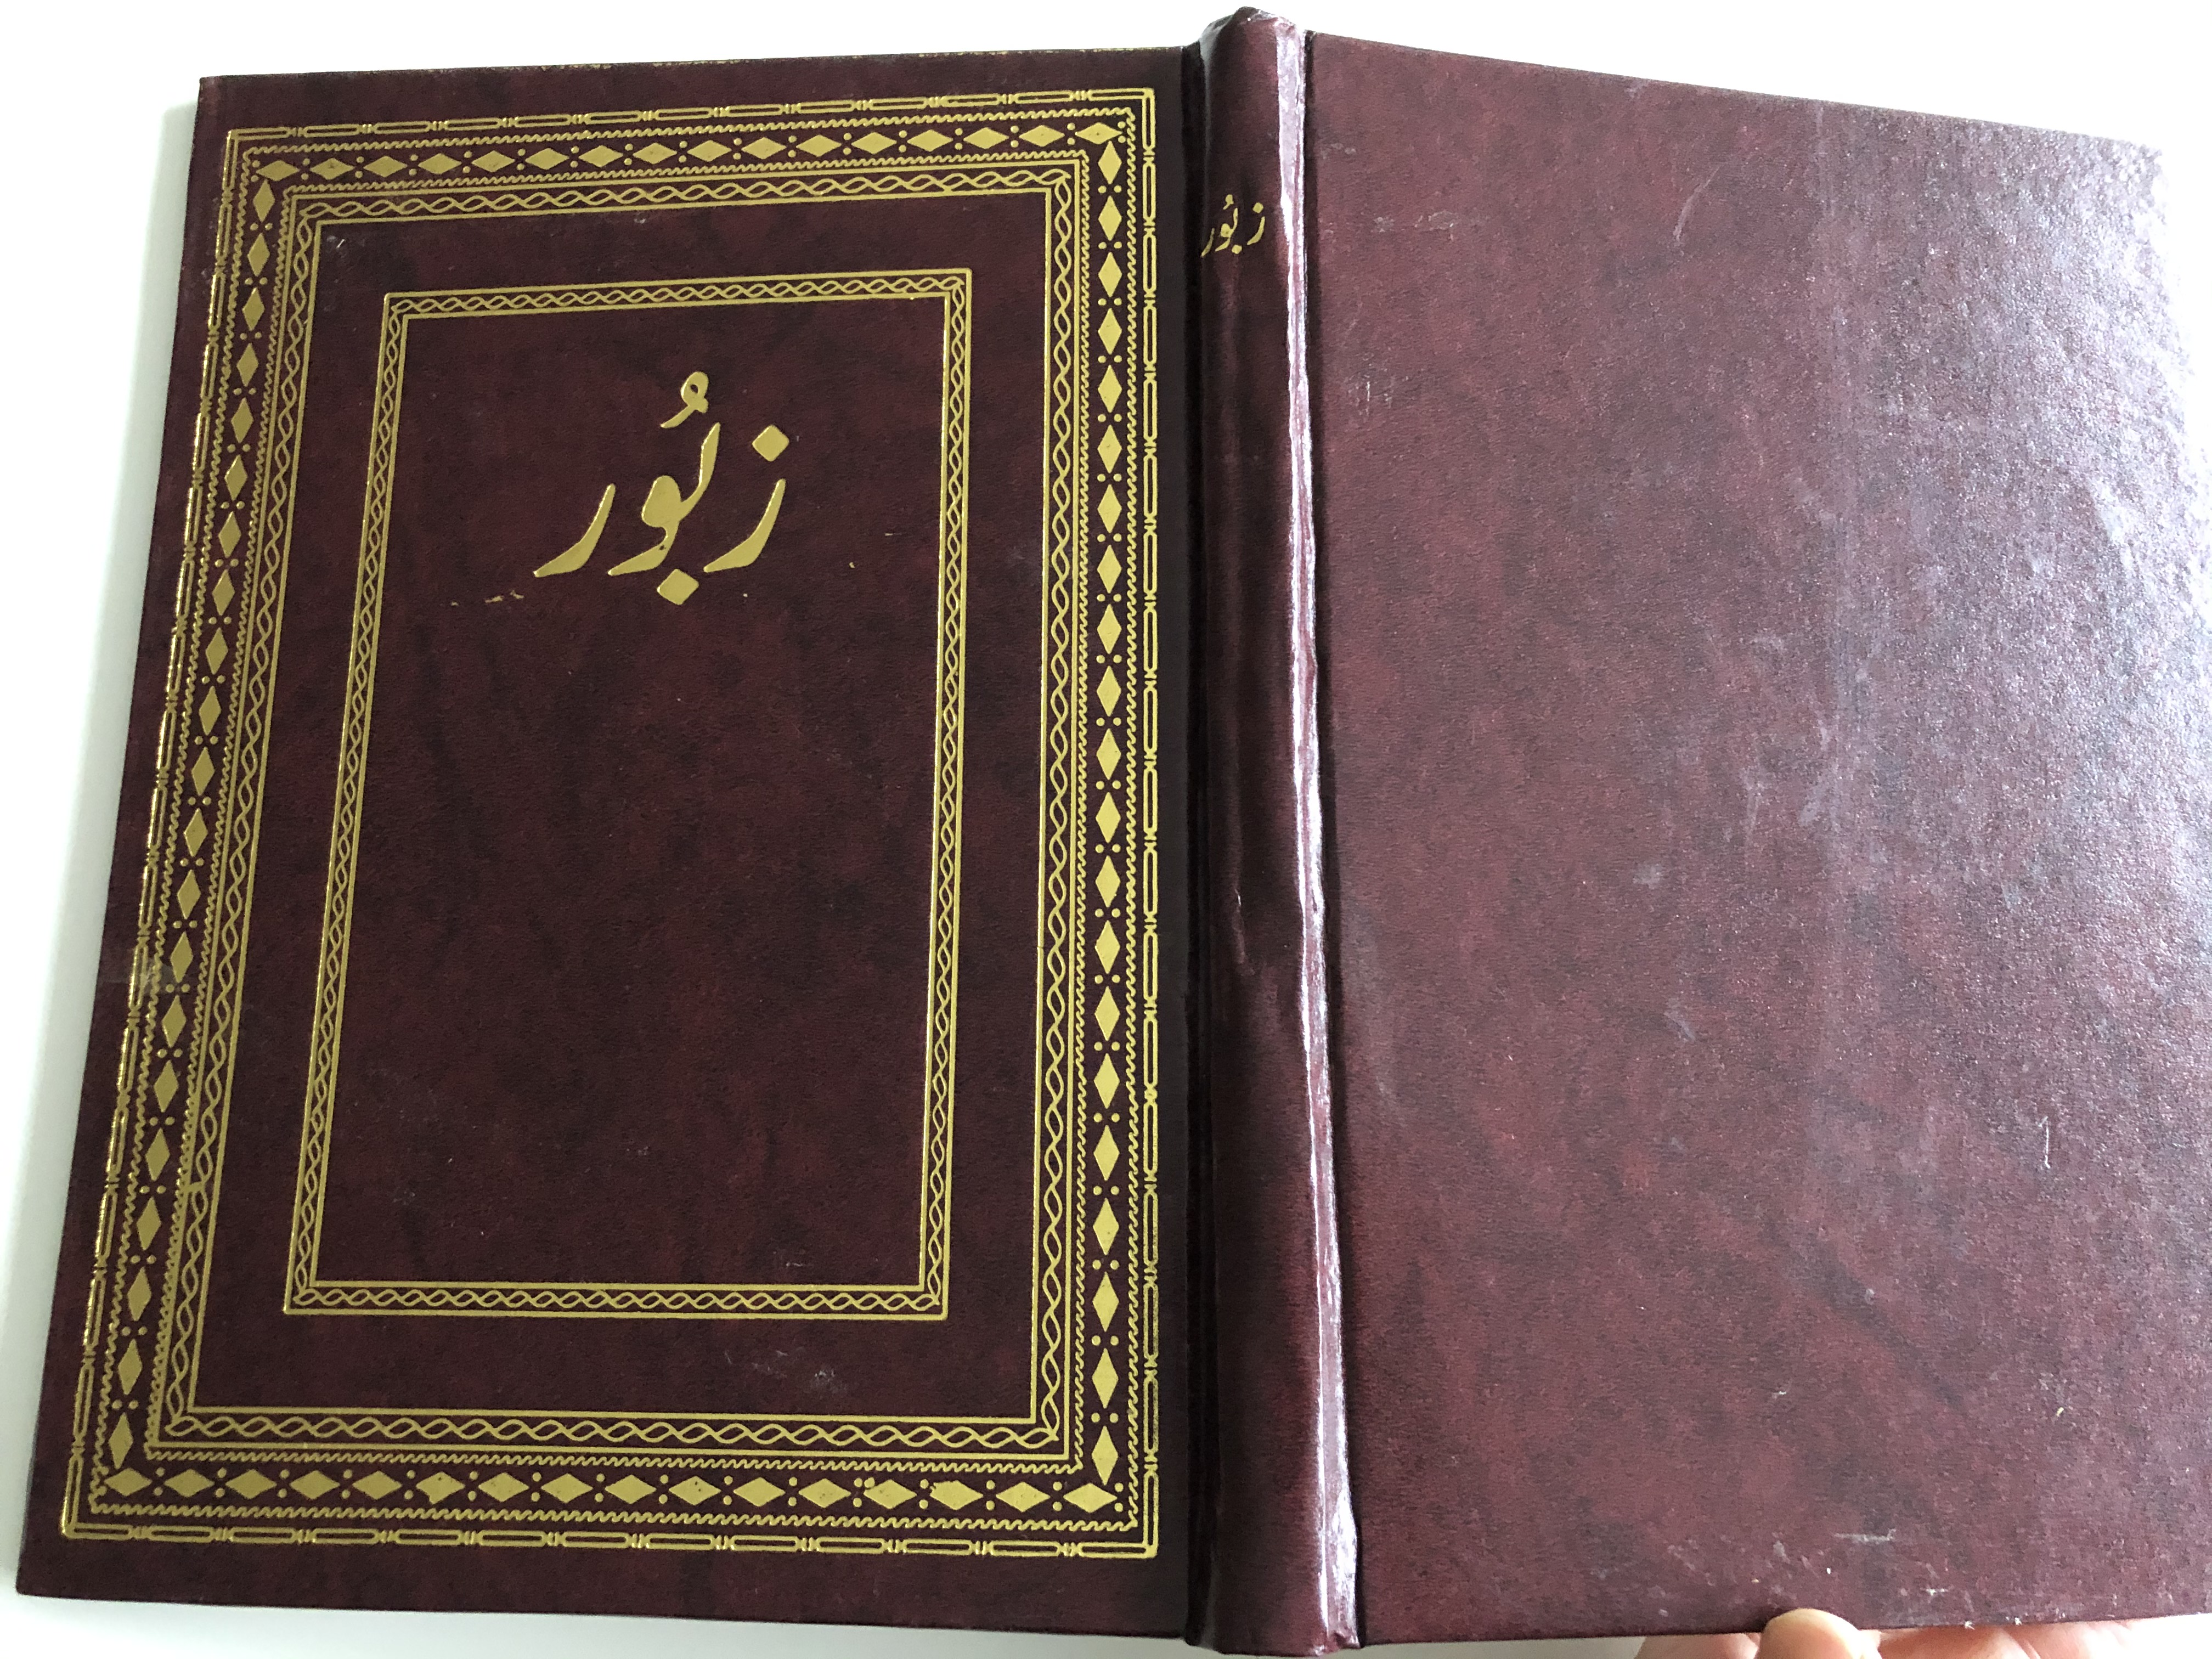 book-of-psalms-from-the-old-testament-in-urdu-language-large-print-7-.jpg